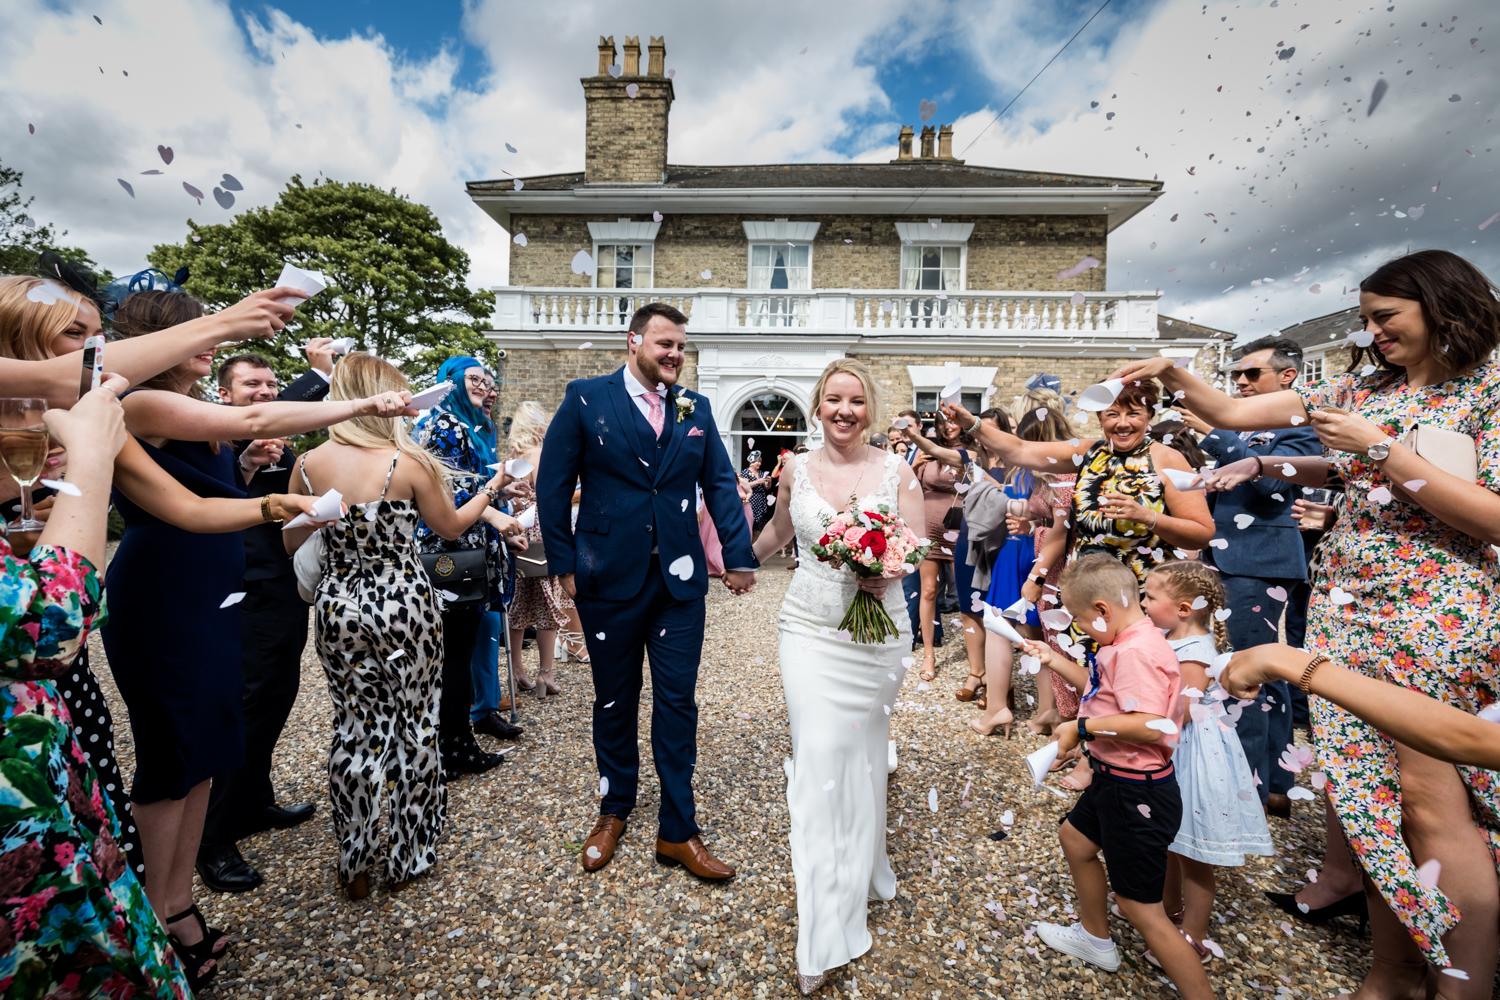 Dunedin House Wedding Photography - Confetti in front of the house